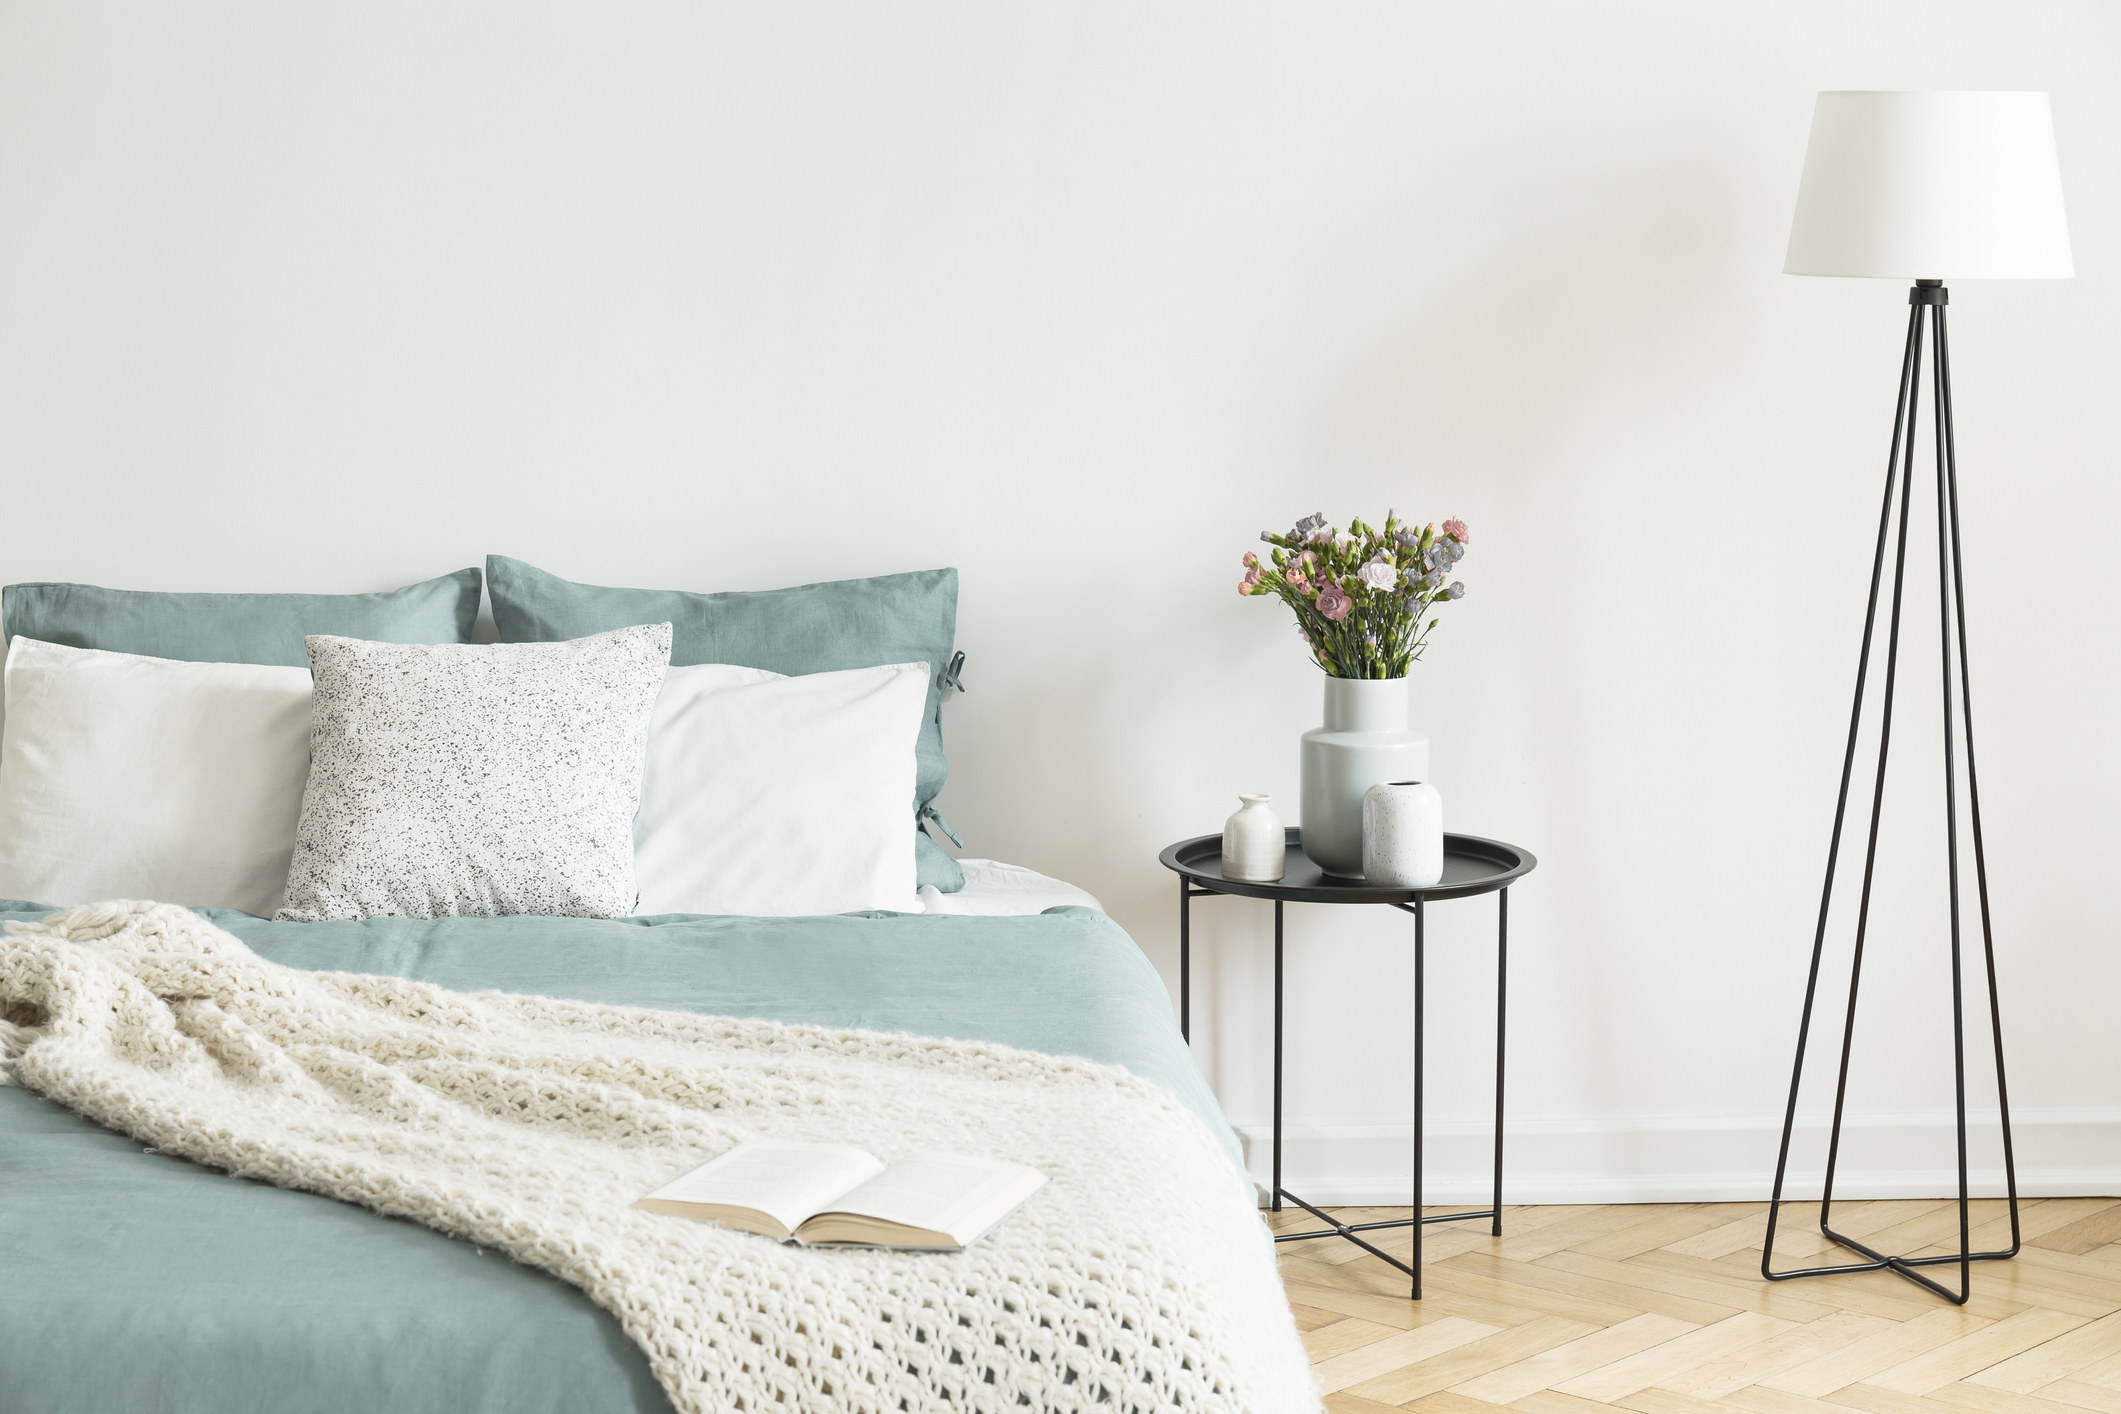 photo of a room that is neatly put together, on the left is a bed with a blue sheet set and quilt with a white throw hanging on the edge with a book on top of it, in the middle is a stand for flowers and on the left side is a standing light